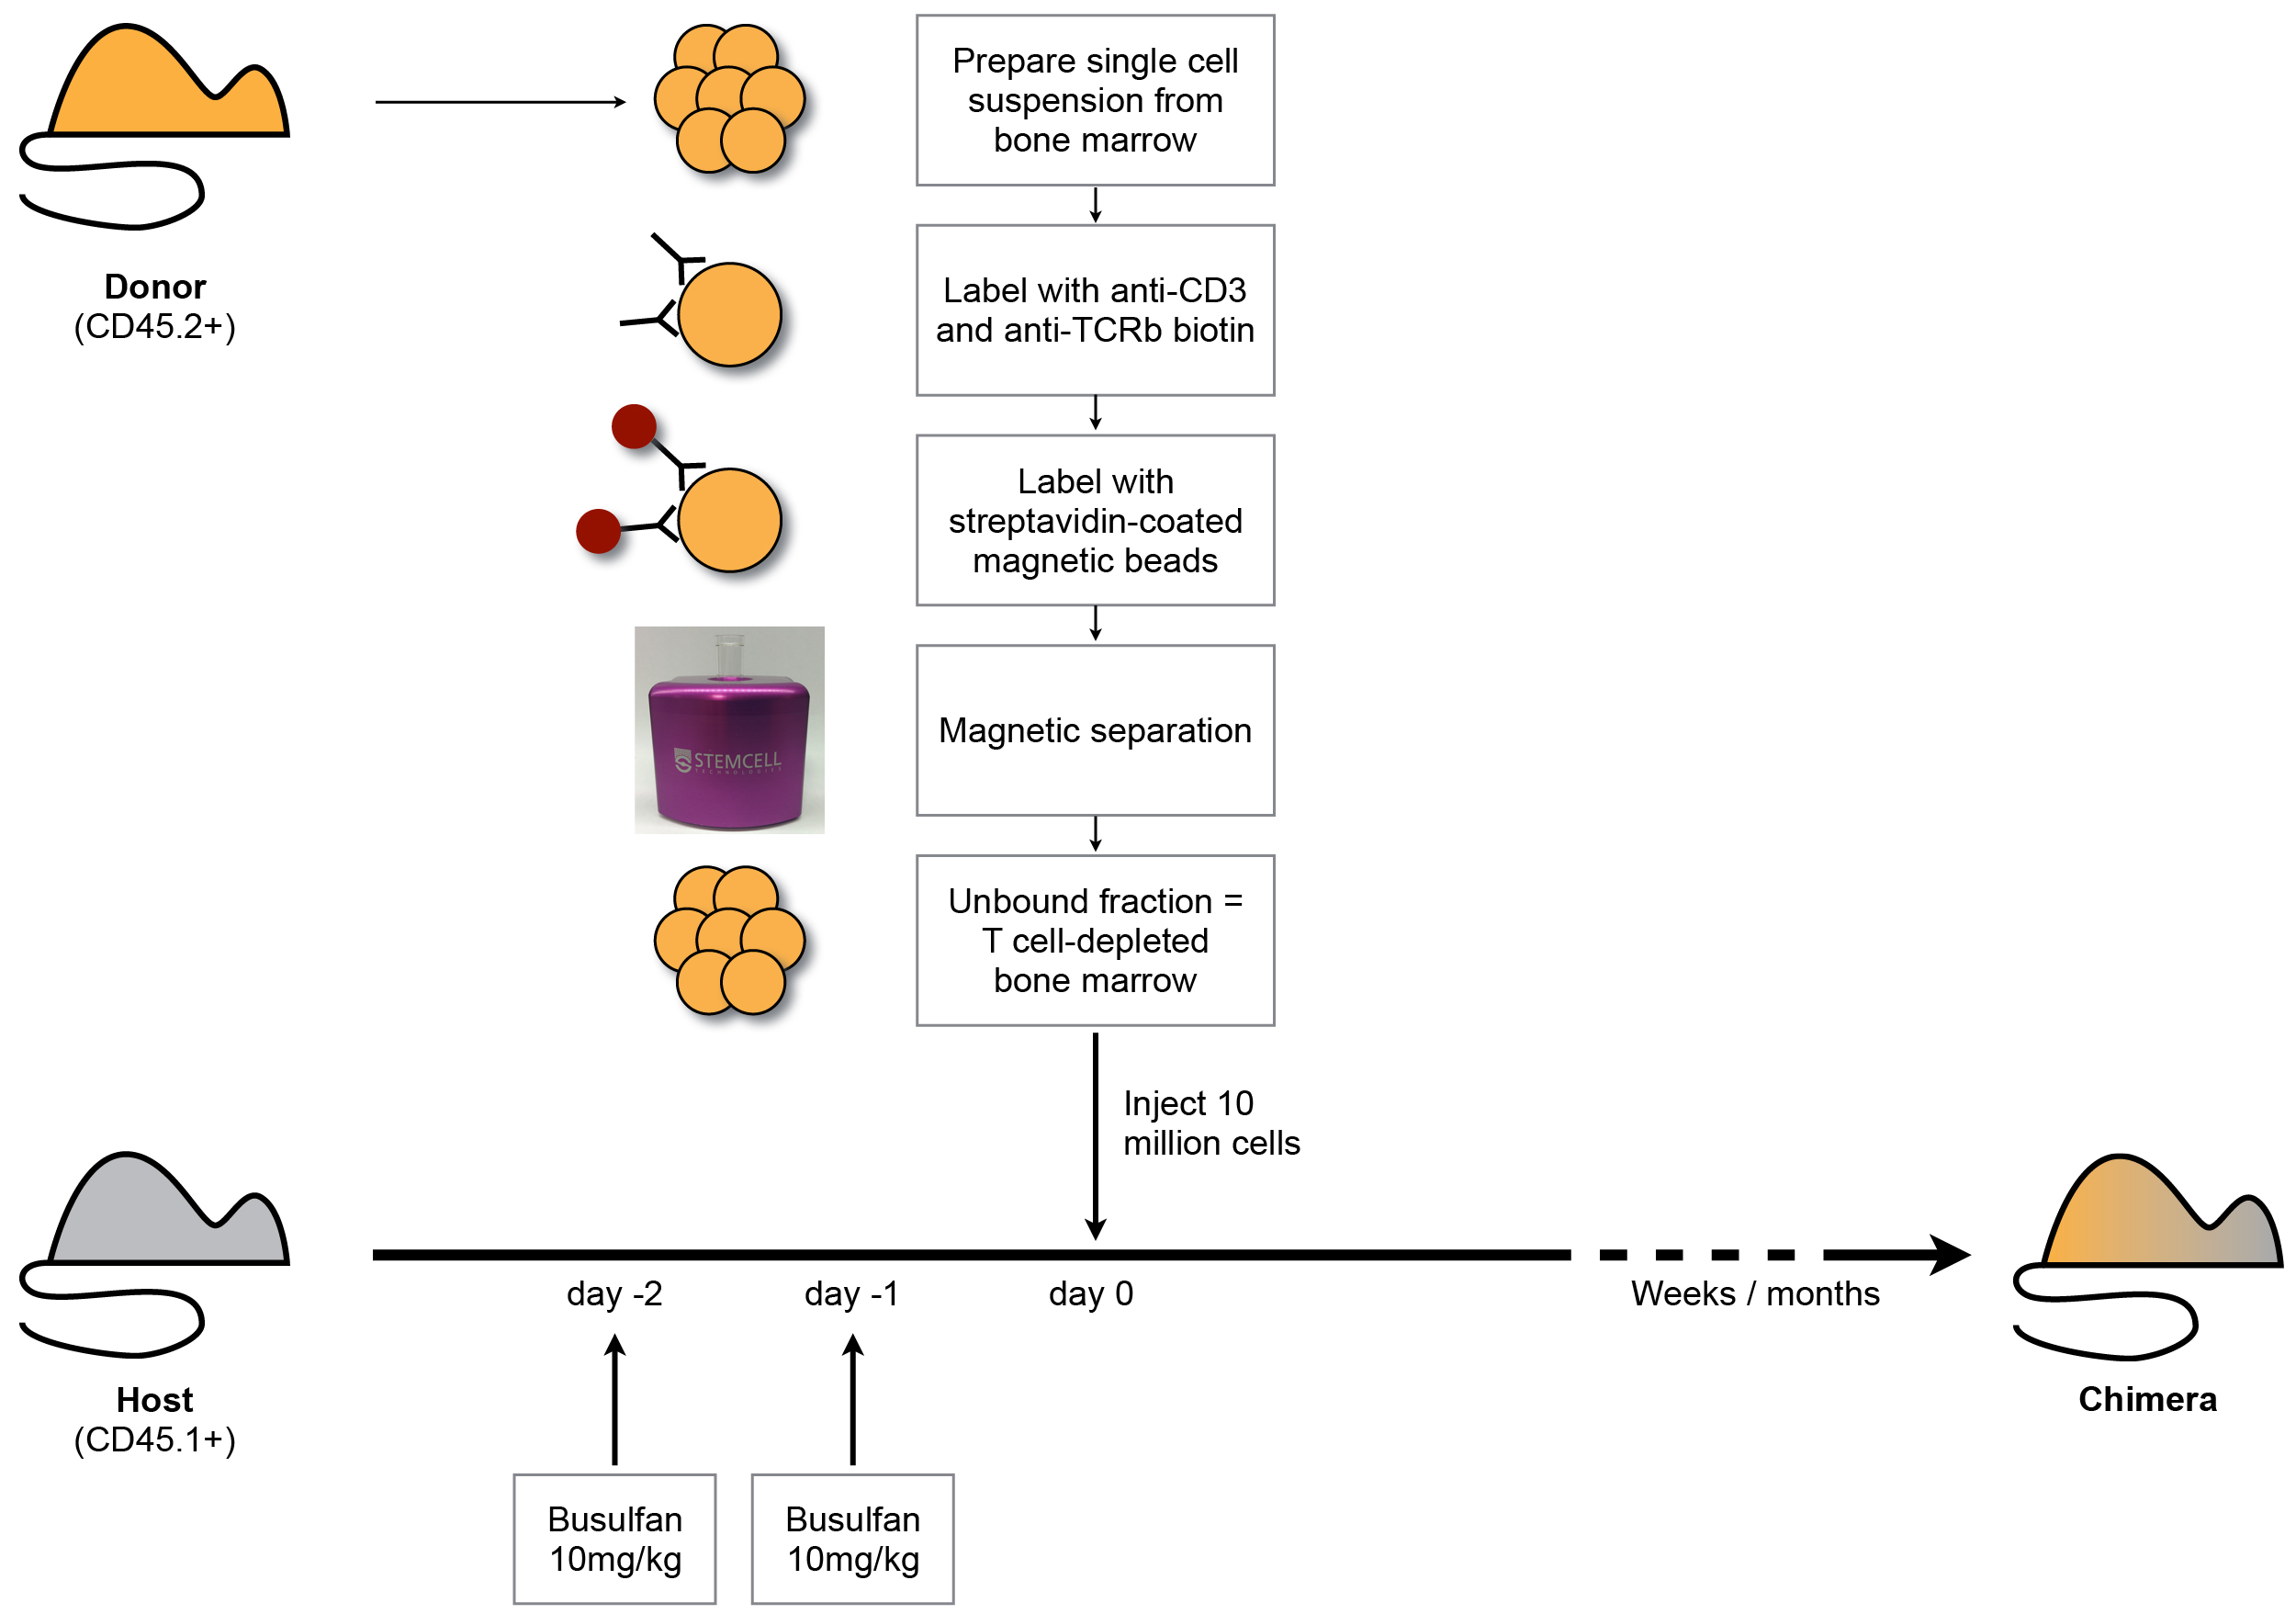 Generation Of Busulfan Chimeric Mice For The Analysis T Labeled Animal Cell Diagram Related Keywords Suggestions This Schematic Summarises Principal Steps Protocol Bone Marrow Cells From Cd452 Donor Are